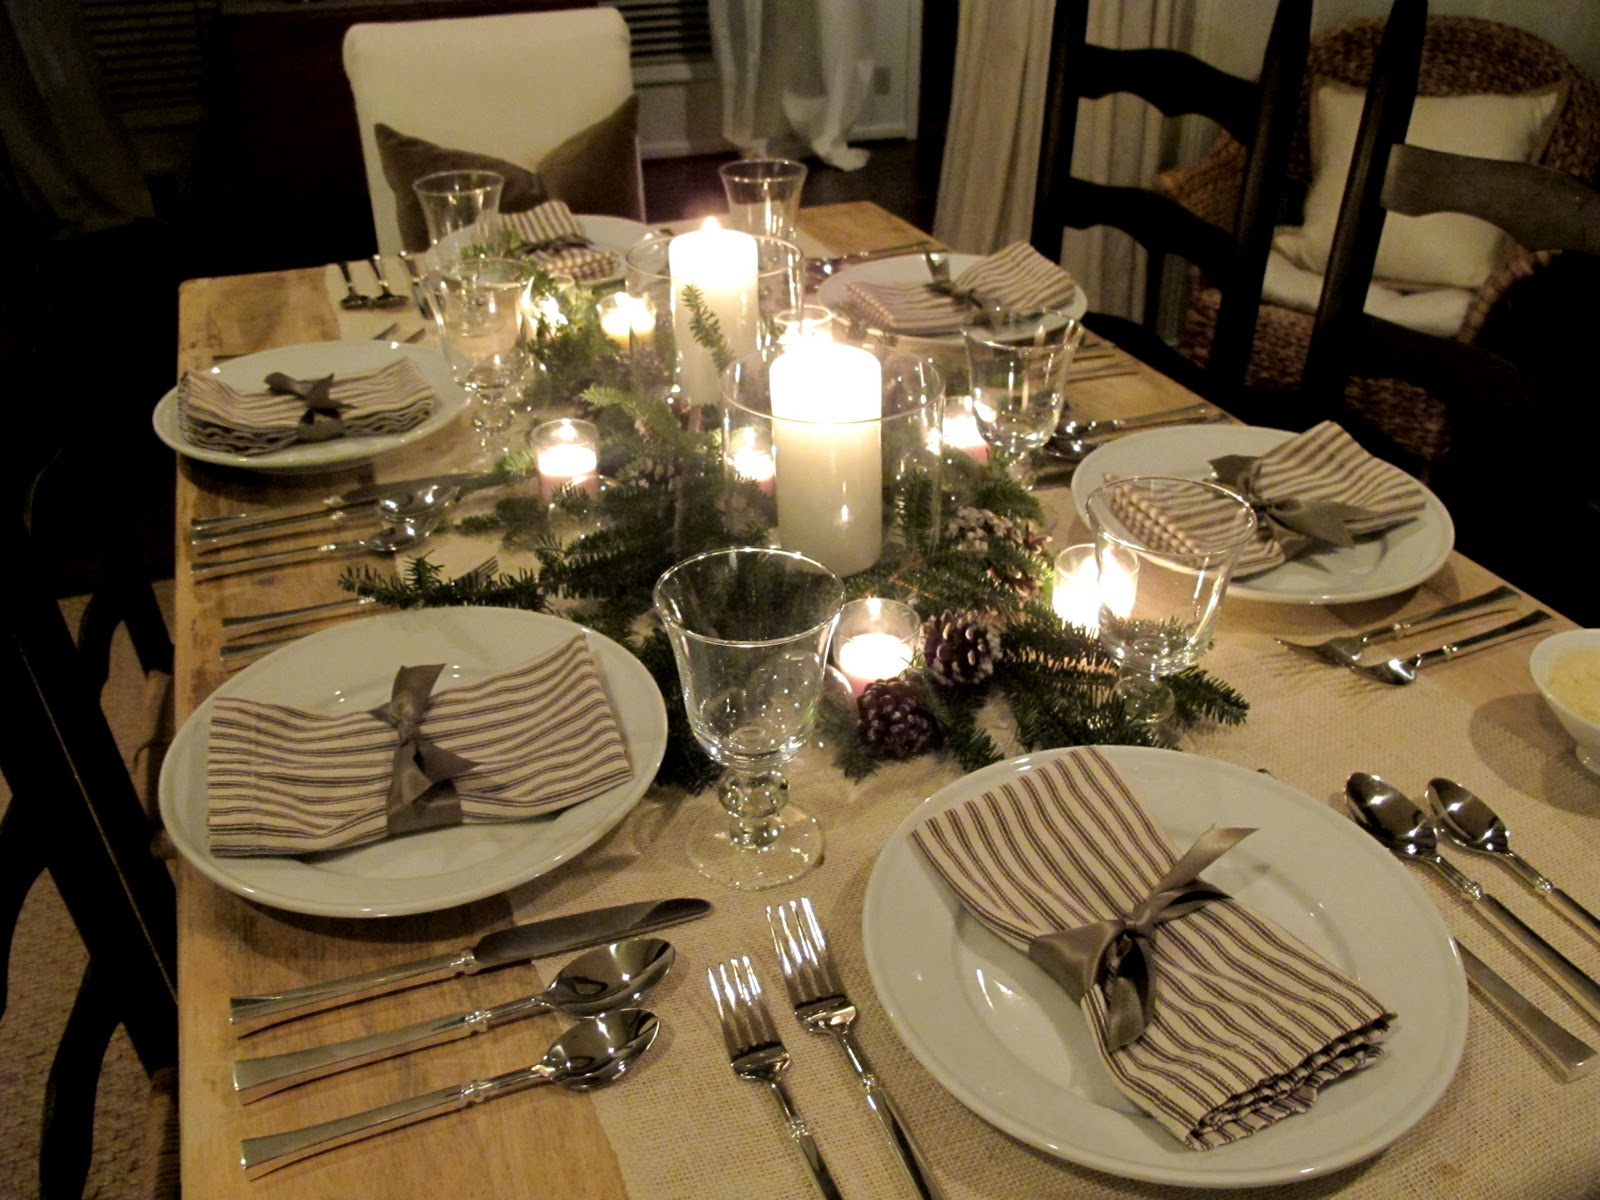 Jenny steffens hobick entertaining tuscan pasta party - Dining table setting ideas ...